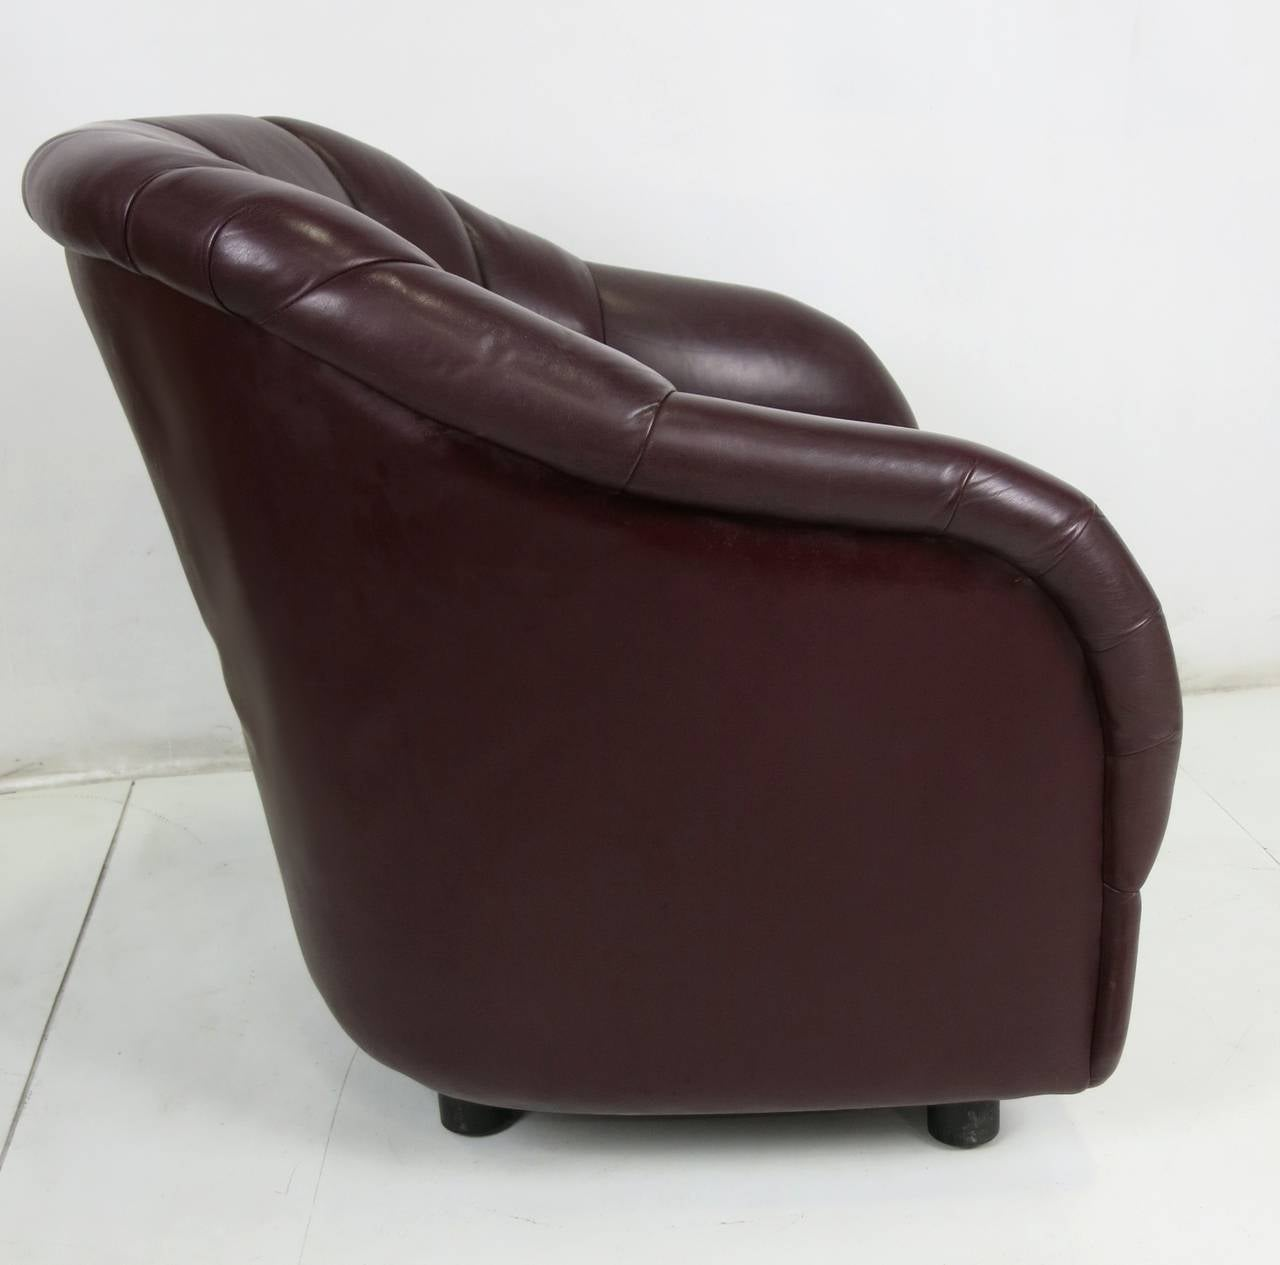 Organic Modern Pair of Oxblood Leather Club Chairs by Ward Bennett for Brickel For Sale